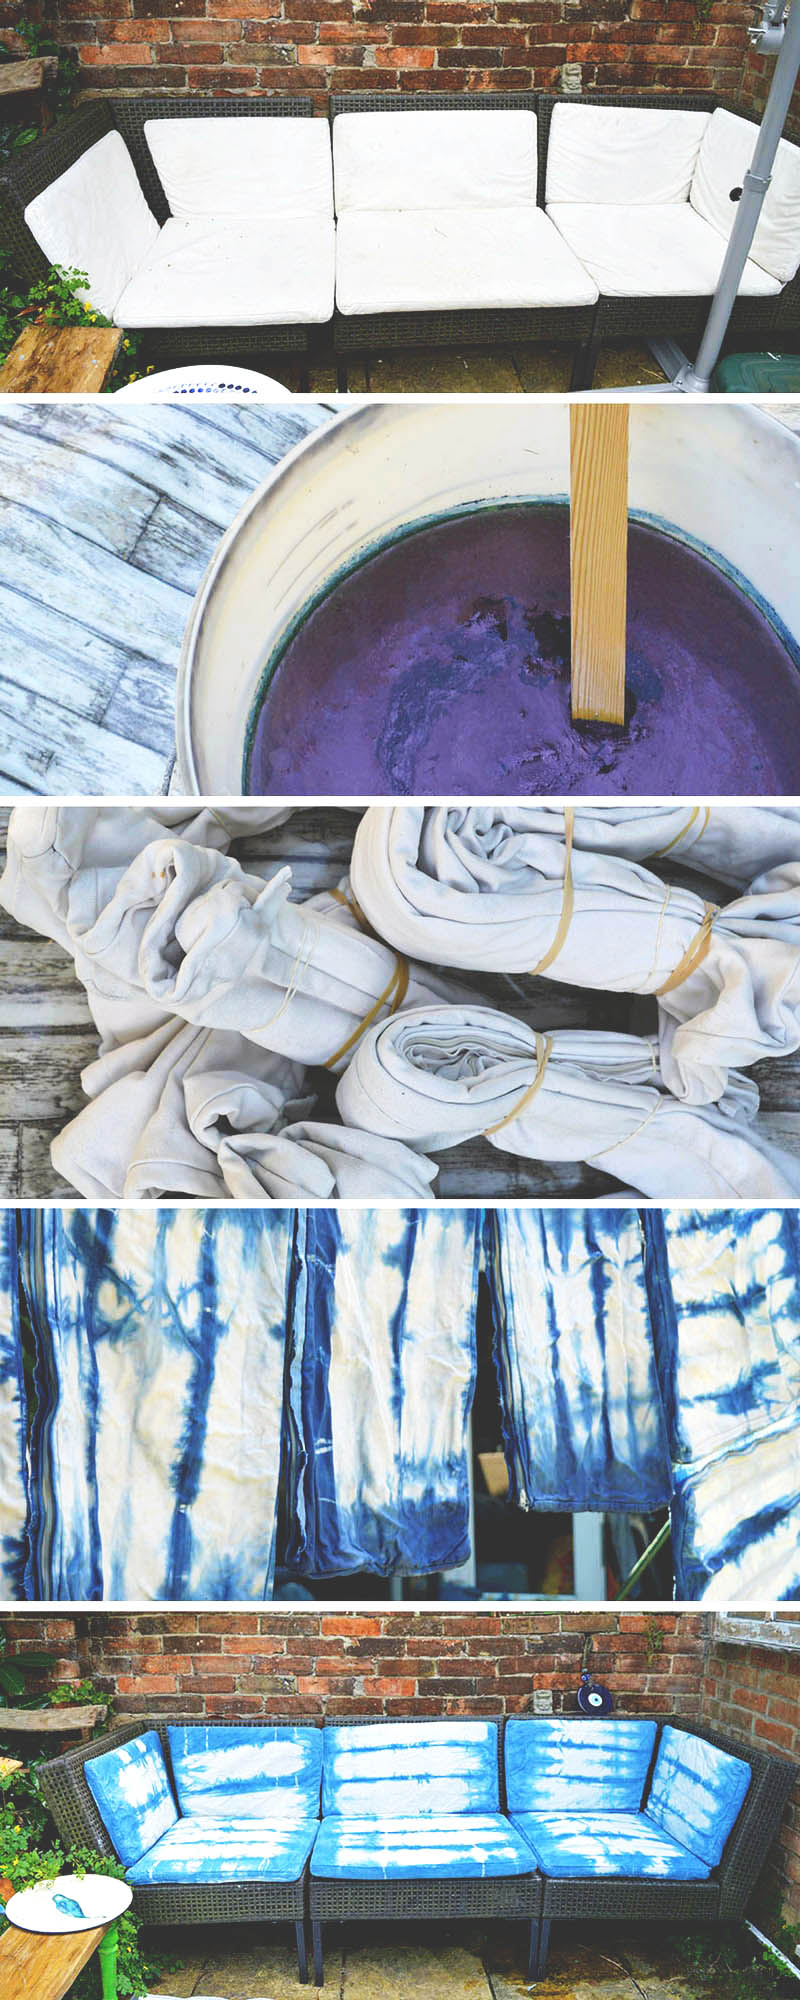 How to update an Ikea Ammero sofa with indigo shibori dyeing